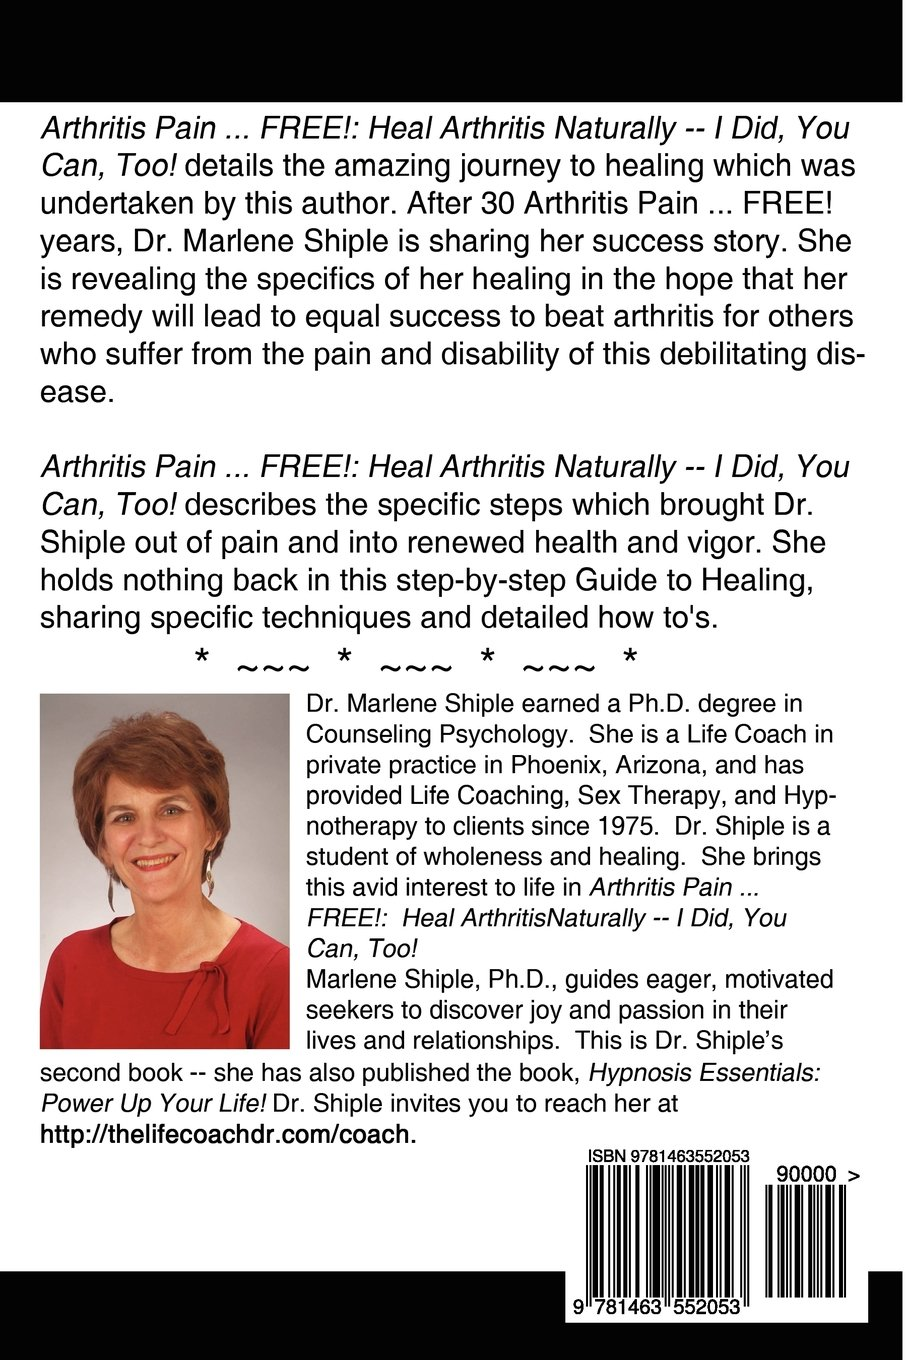 Other methods also can help you conquer arthritis pain.